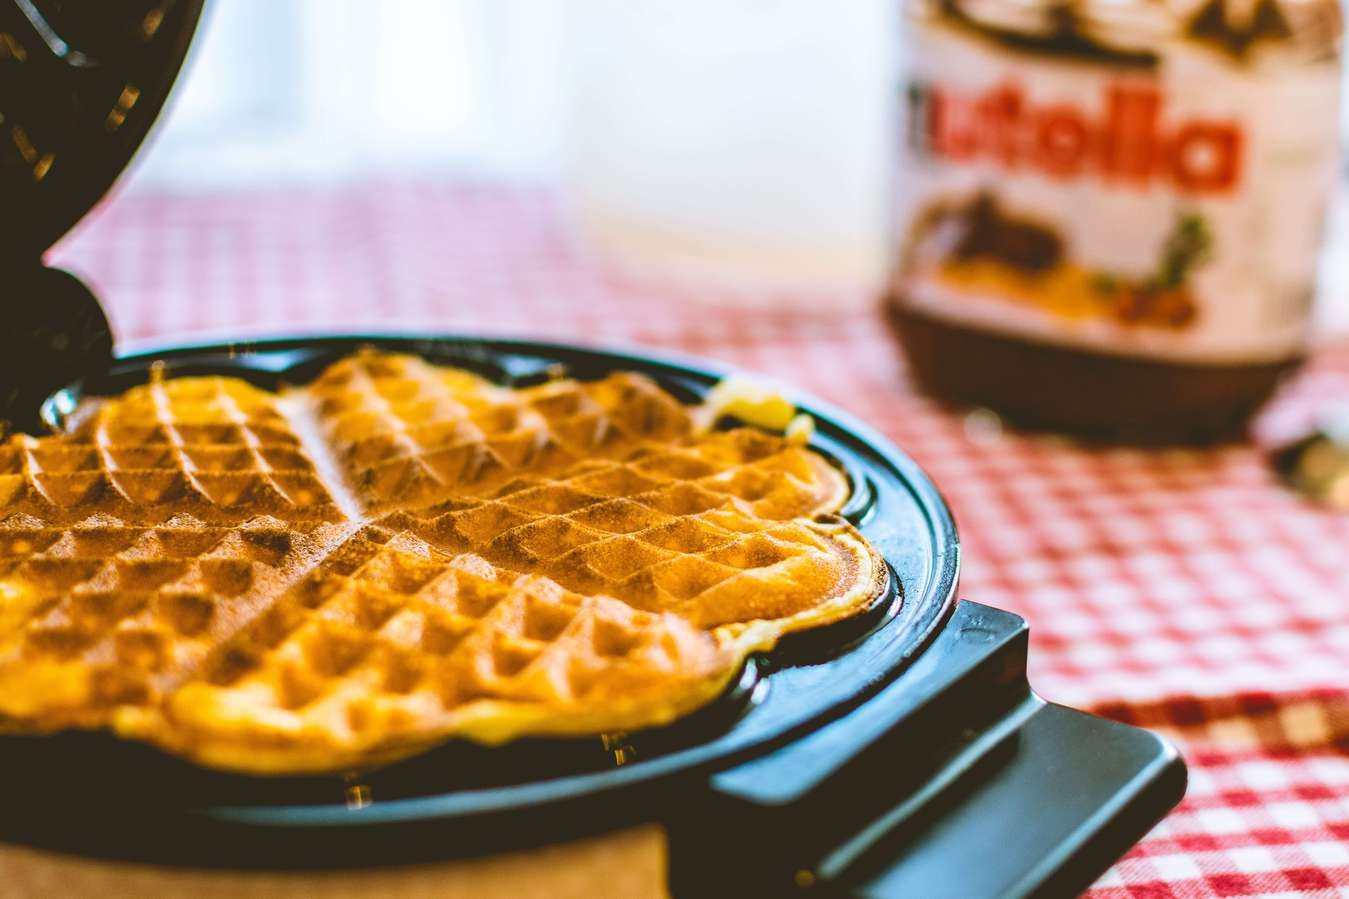 Stampo per waffle